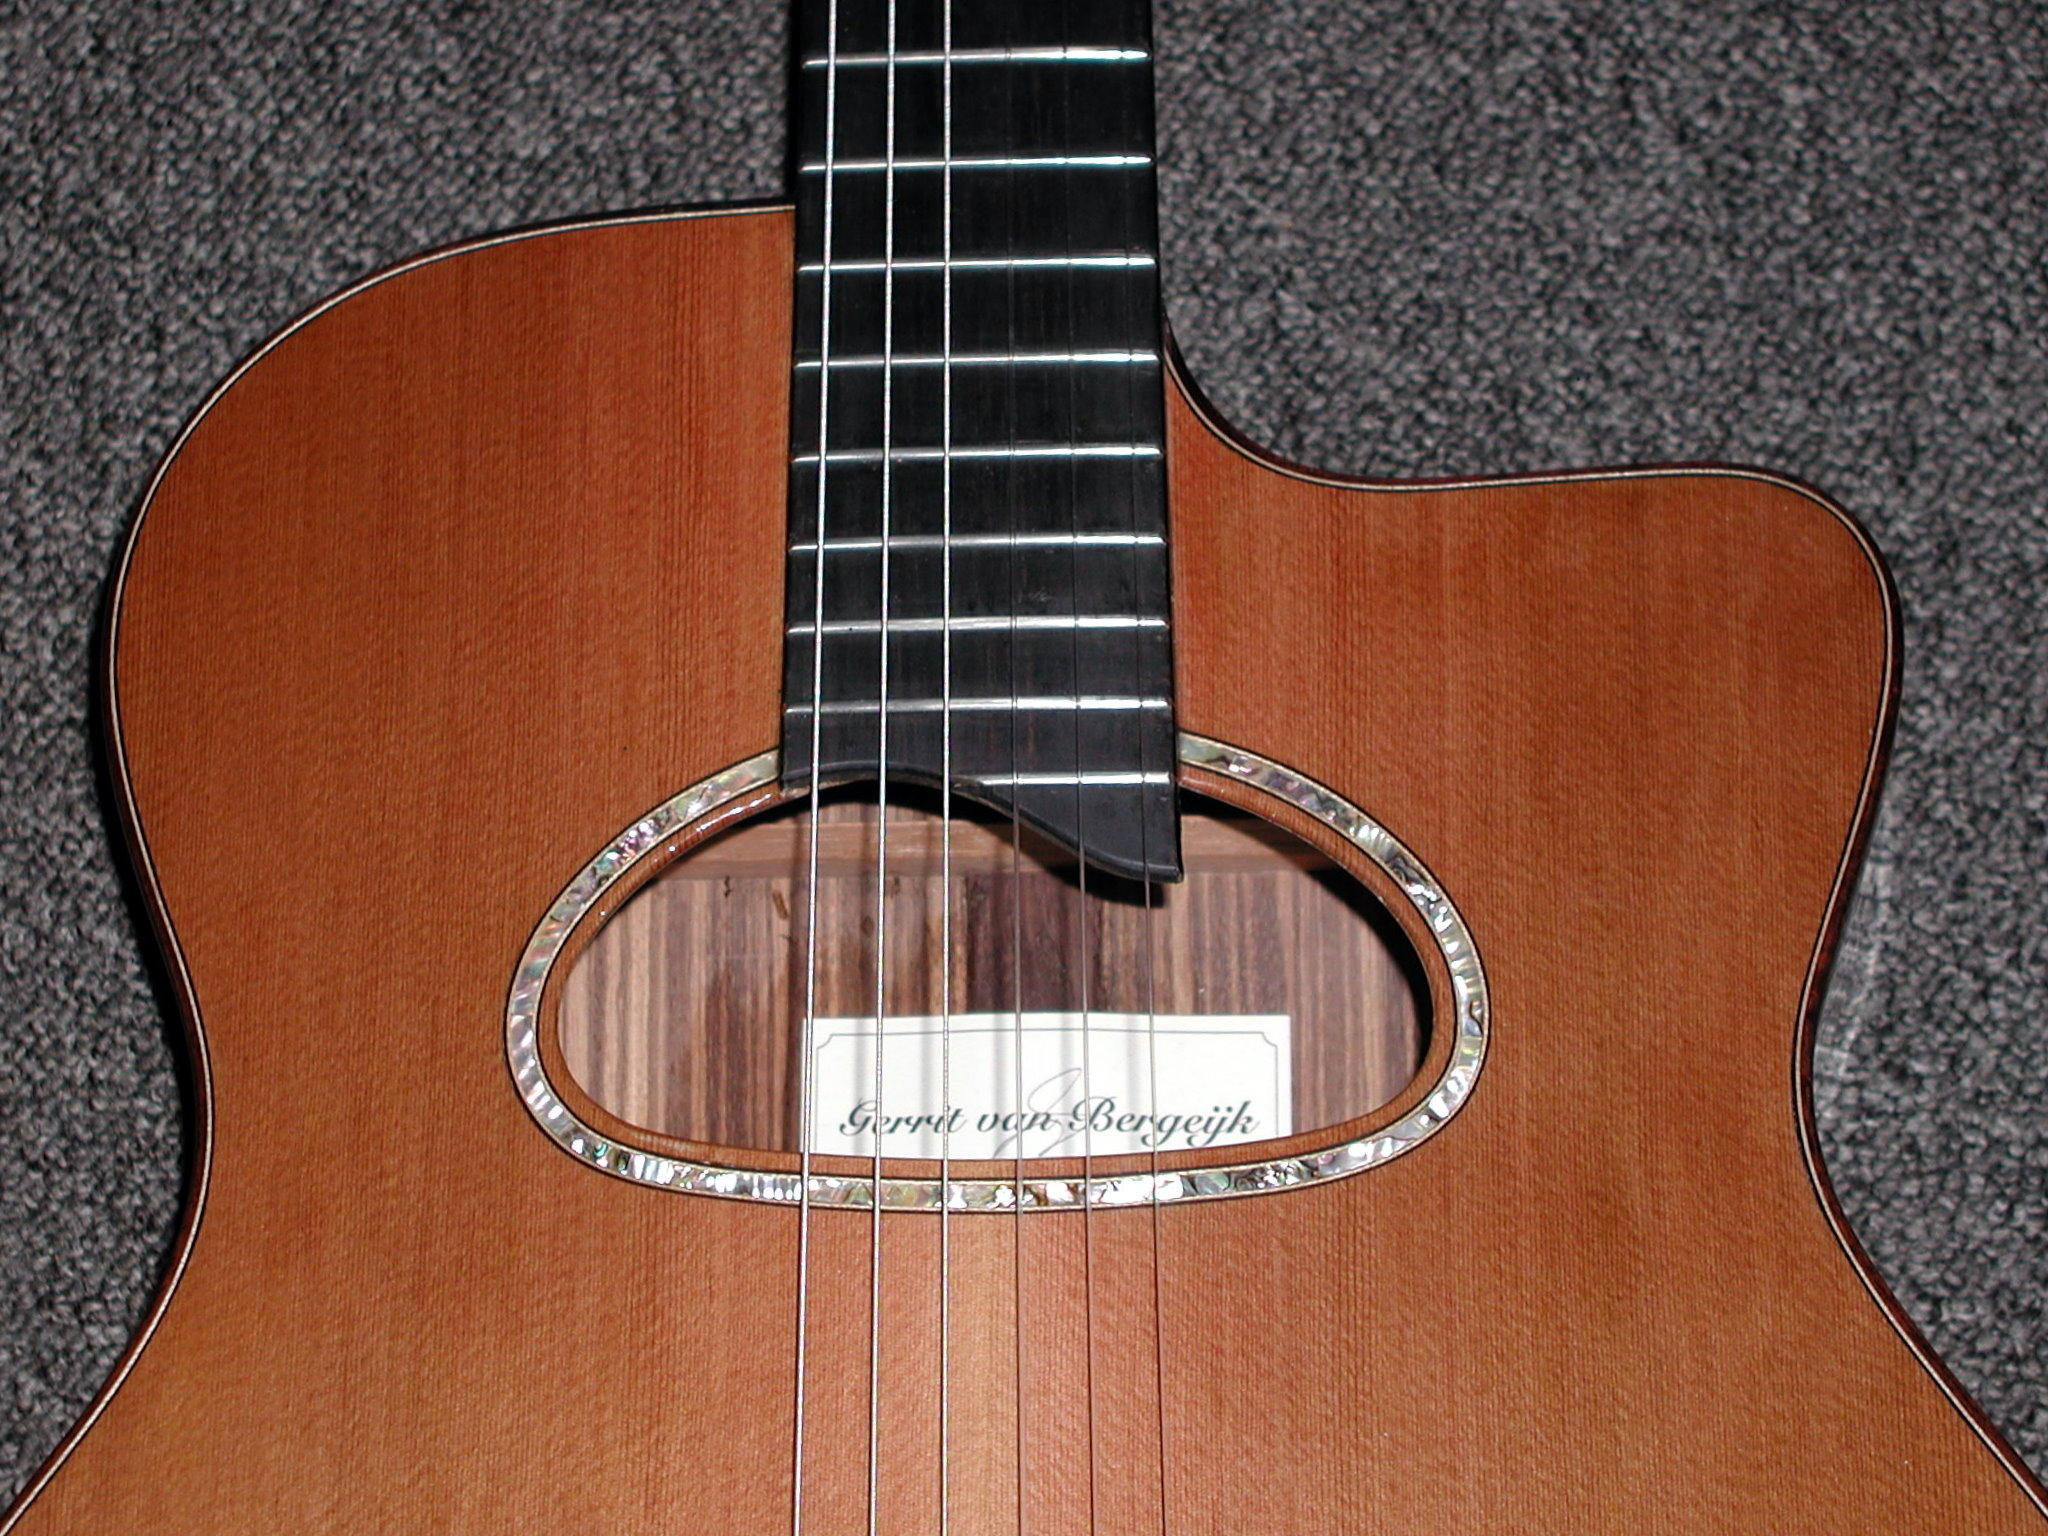 Soundhole inlay is abalone